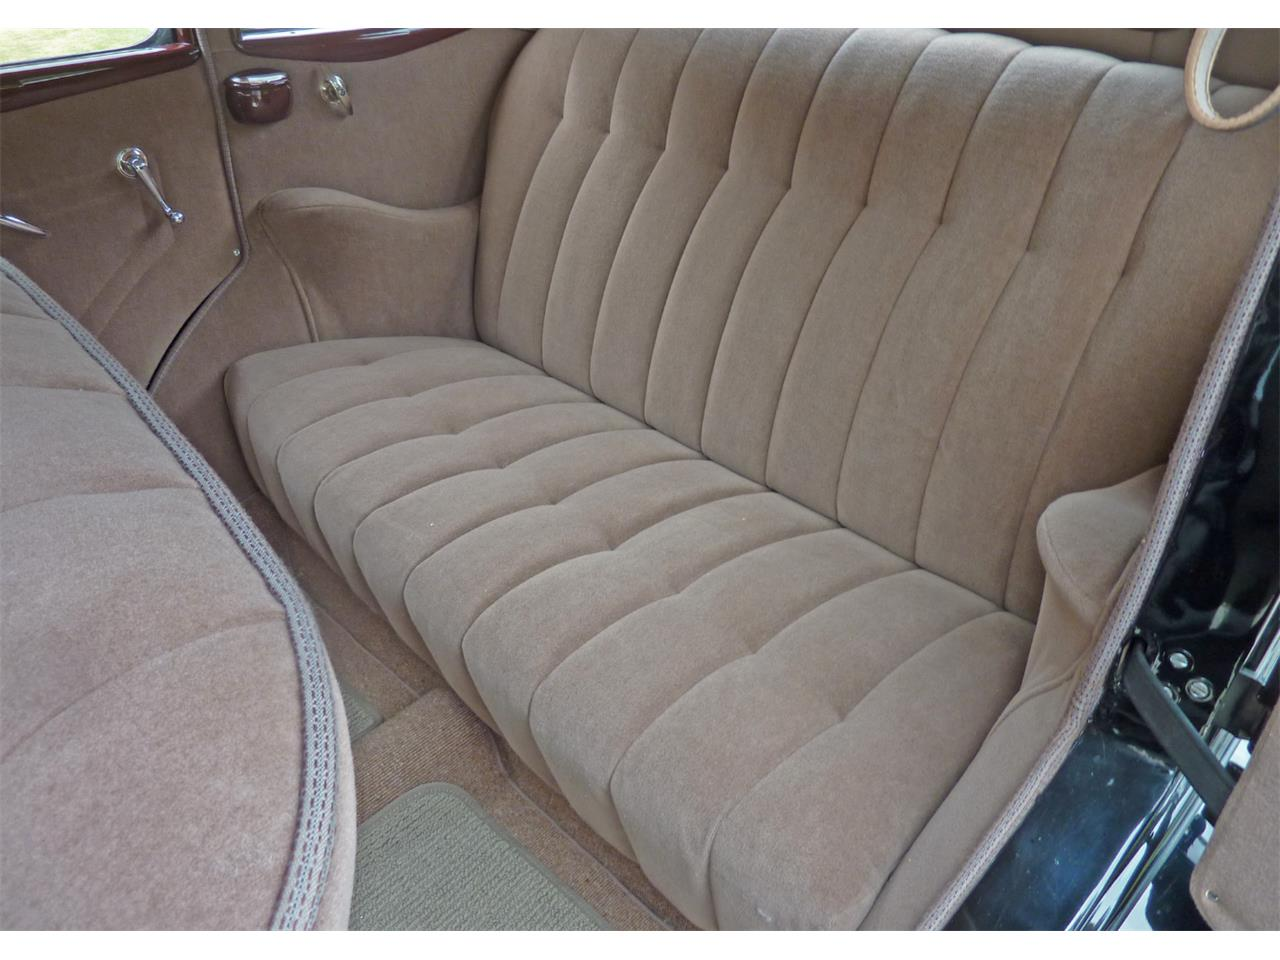 Large Picture of Classic 1934 Ford Sedan - $46,000.00 Offered by a Private Seller - ISZK